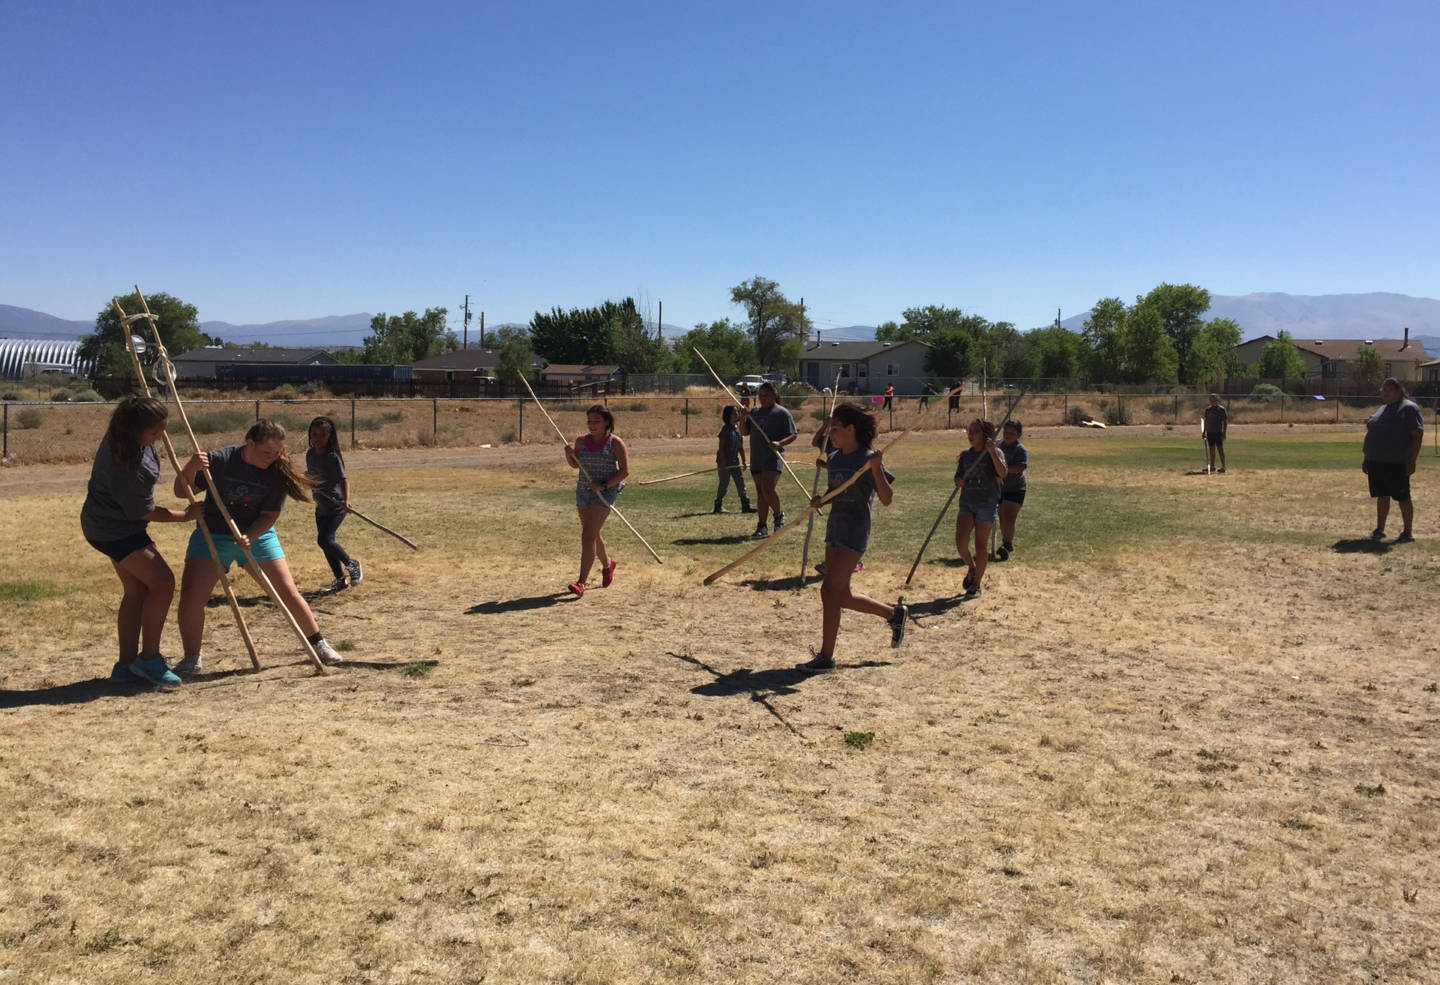 A New Generation Competes in Traditional Games to Preserve Washoe Culture